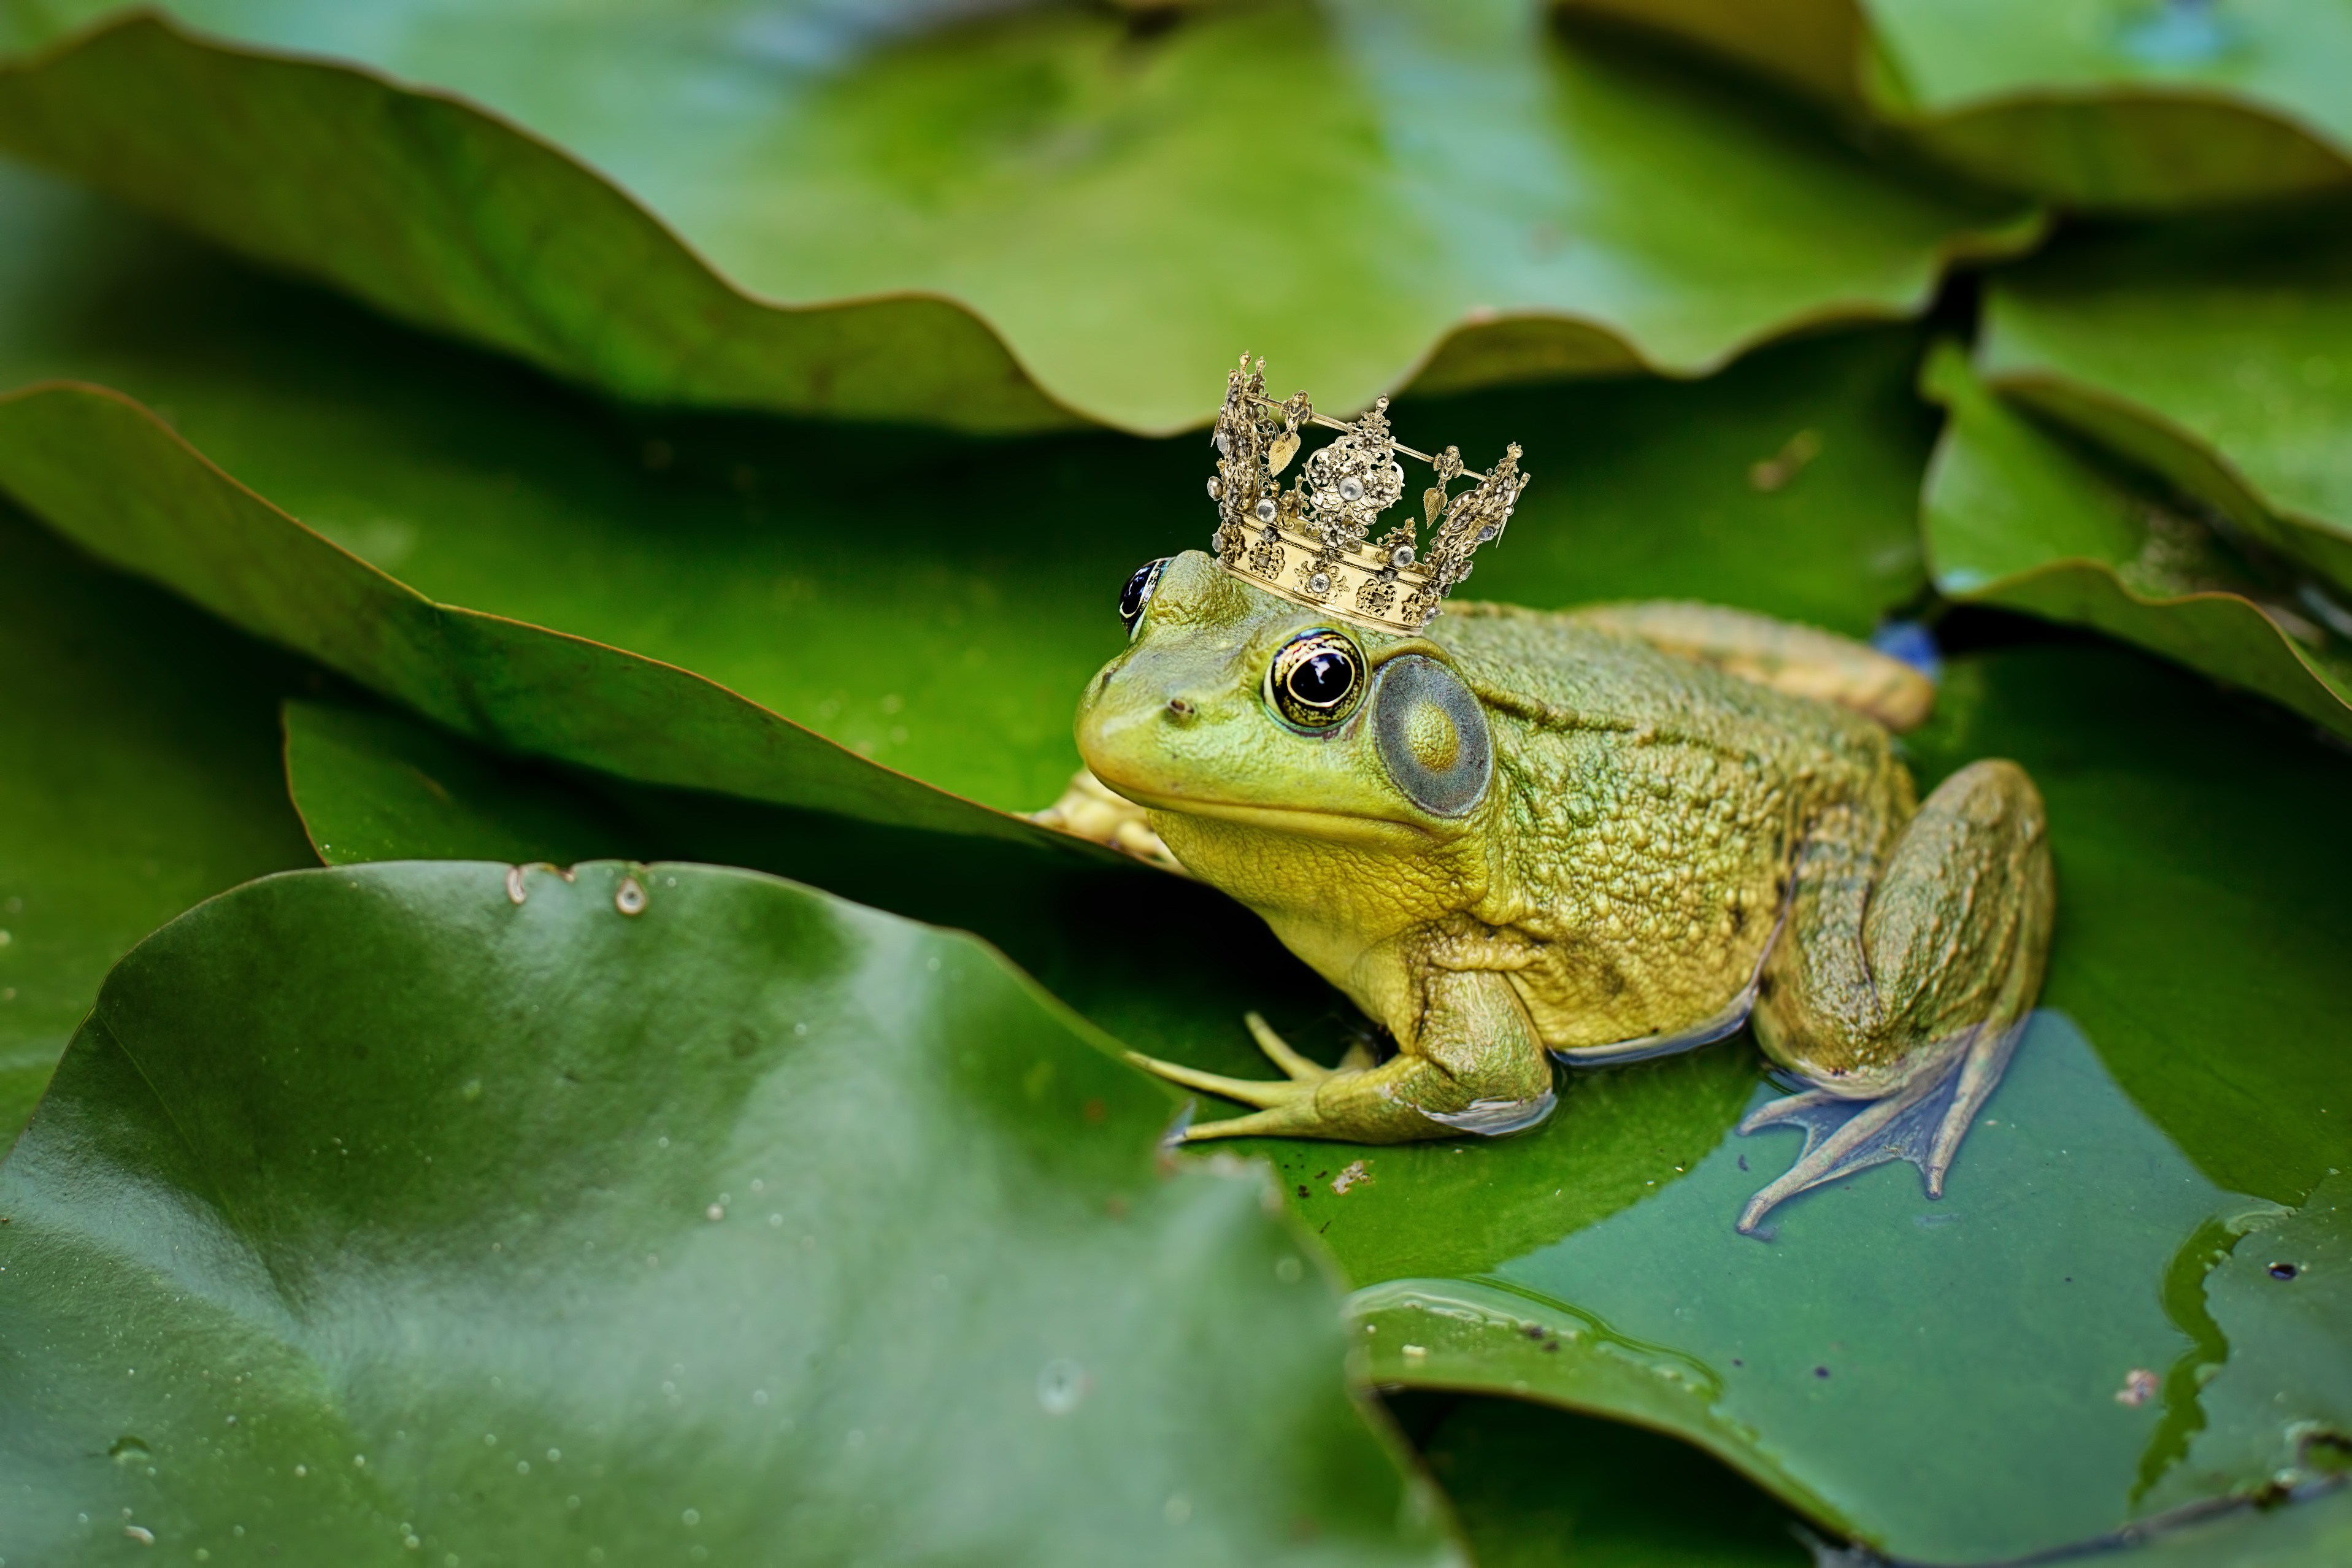 green, bull frog, pond, lily pad, crown,